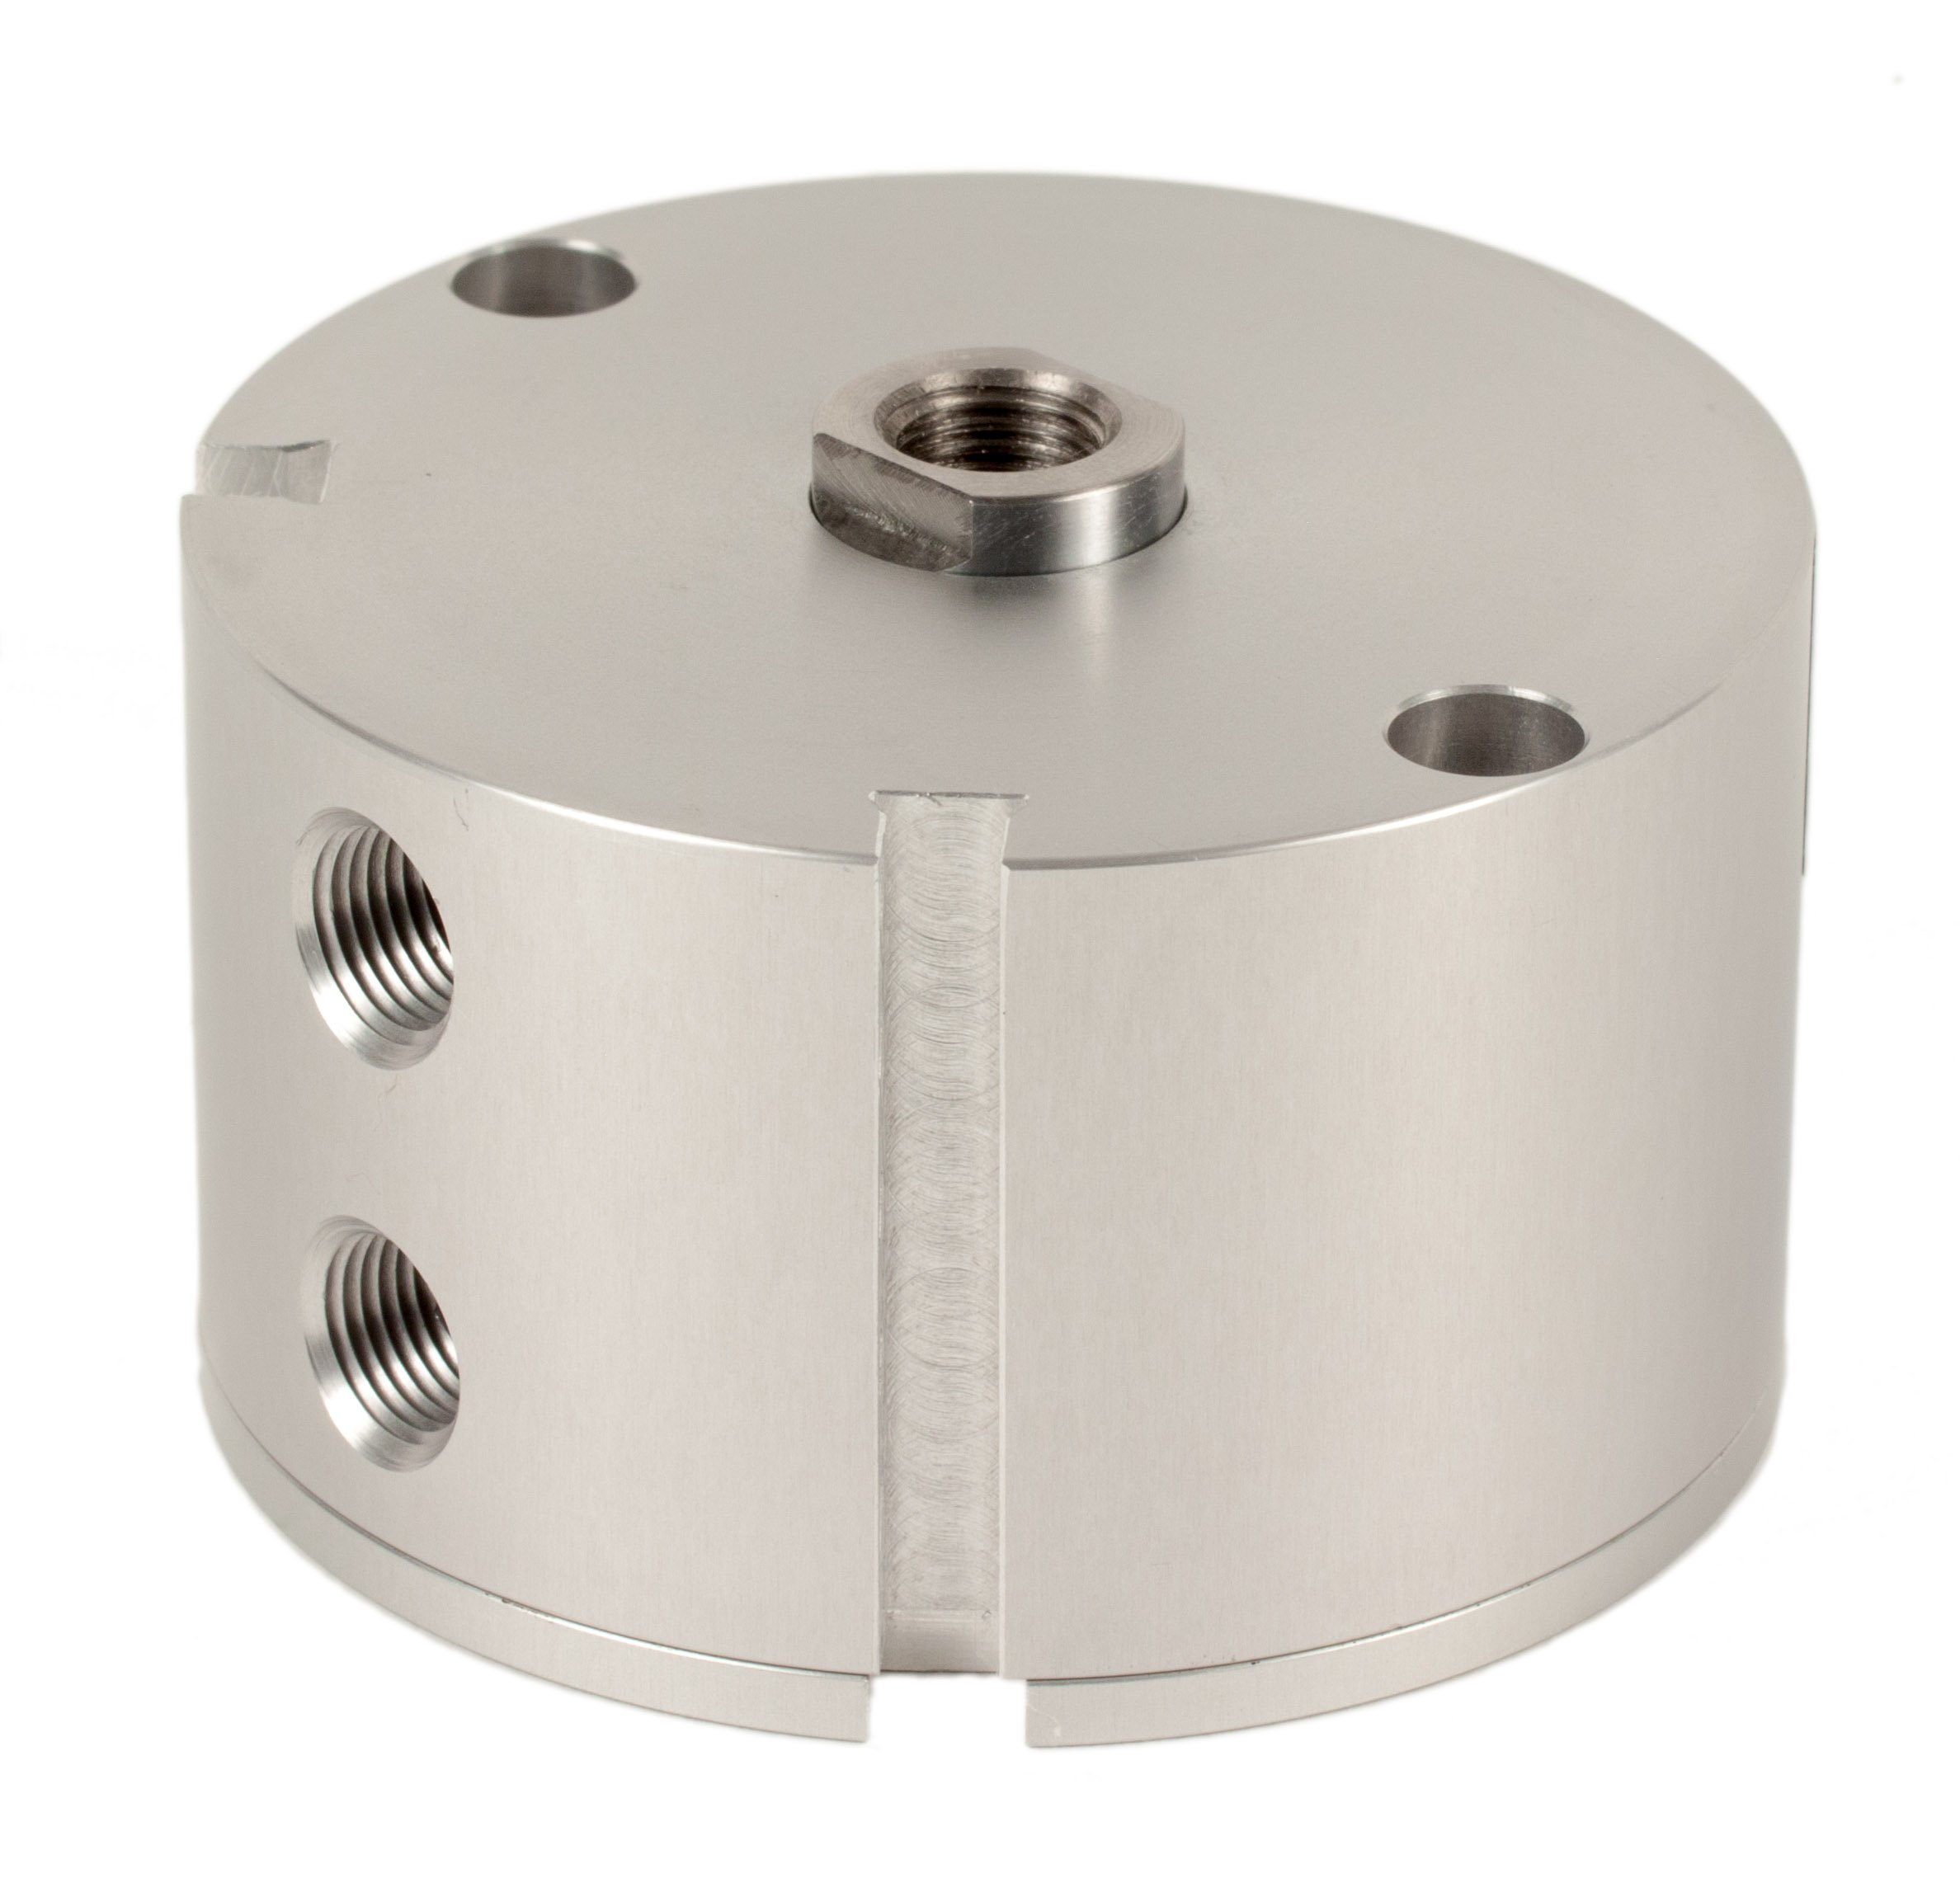 Fabco-Air B-221-X-E Original Pancake Cylinder, Double Acting, Maximum Pressure of 250 PSI, Switch Ready with Magnet, 1-5/8'' Bore Diameter x 1/2'' Stroke